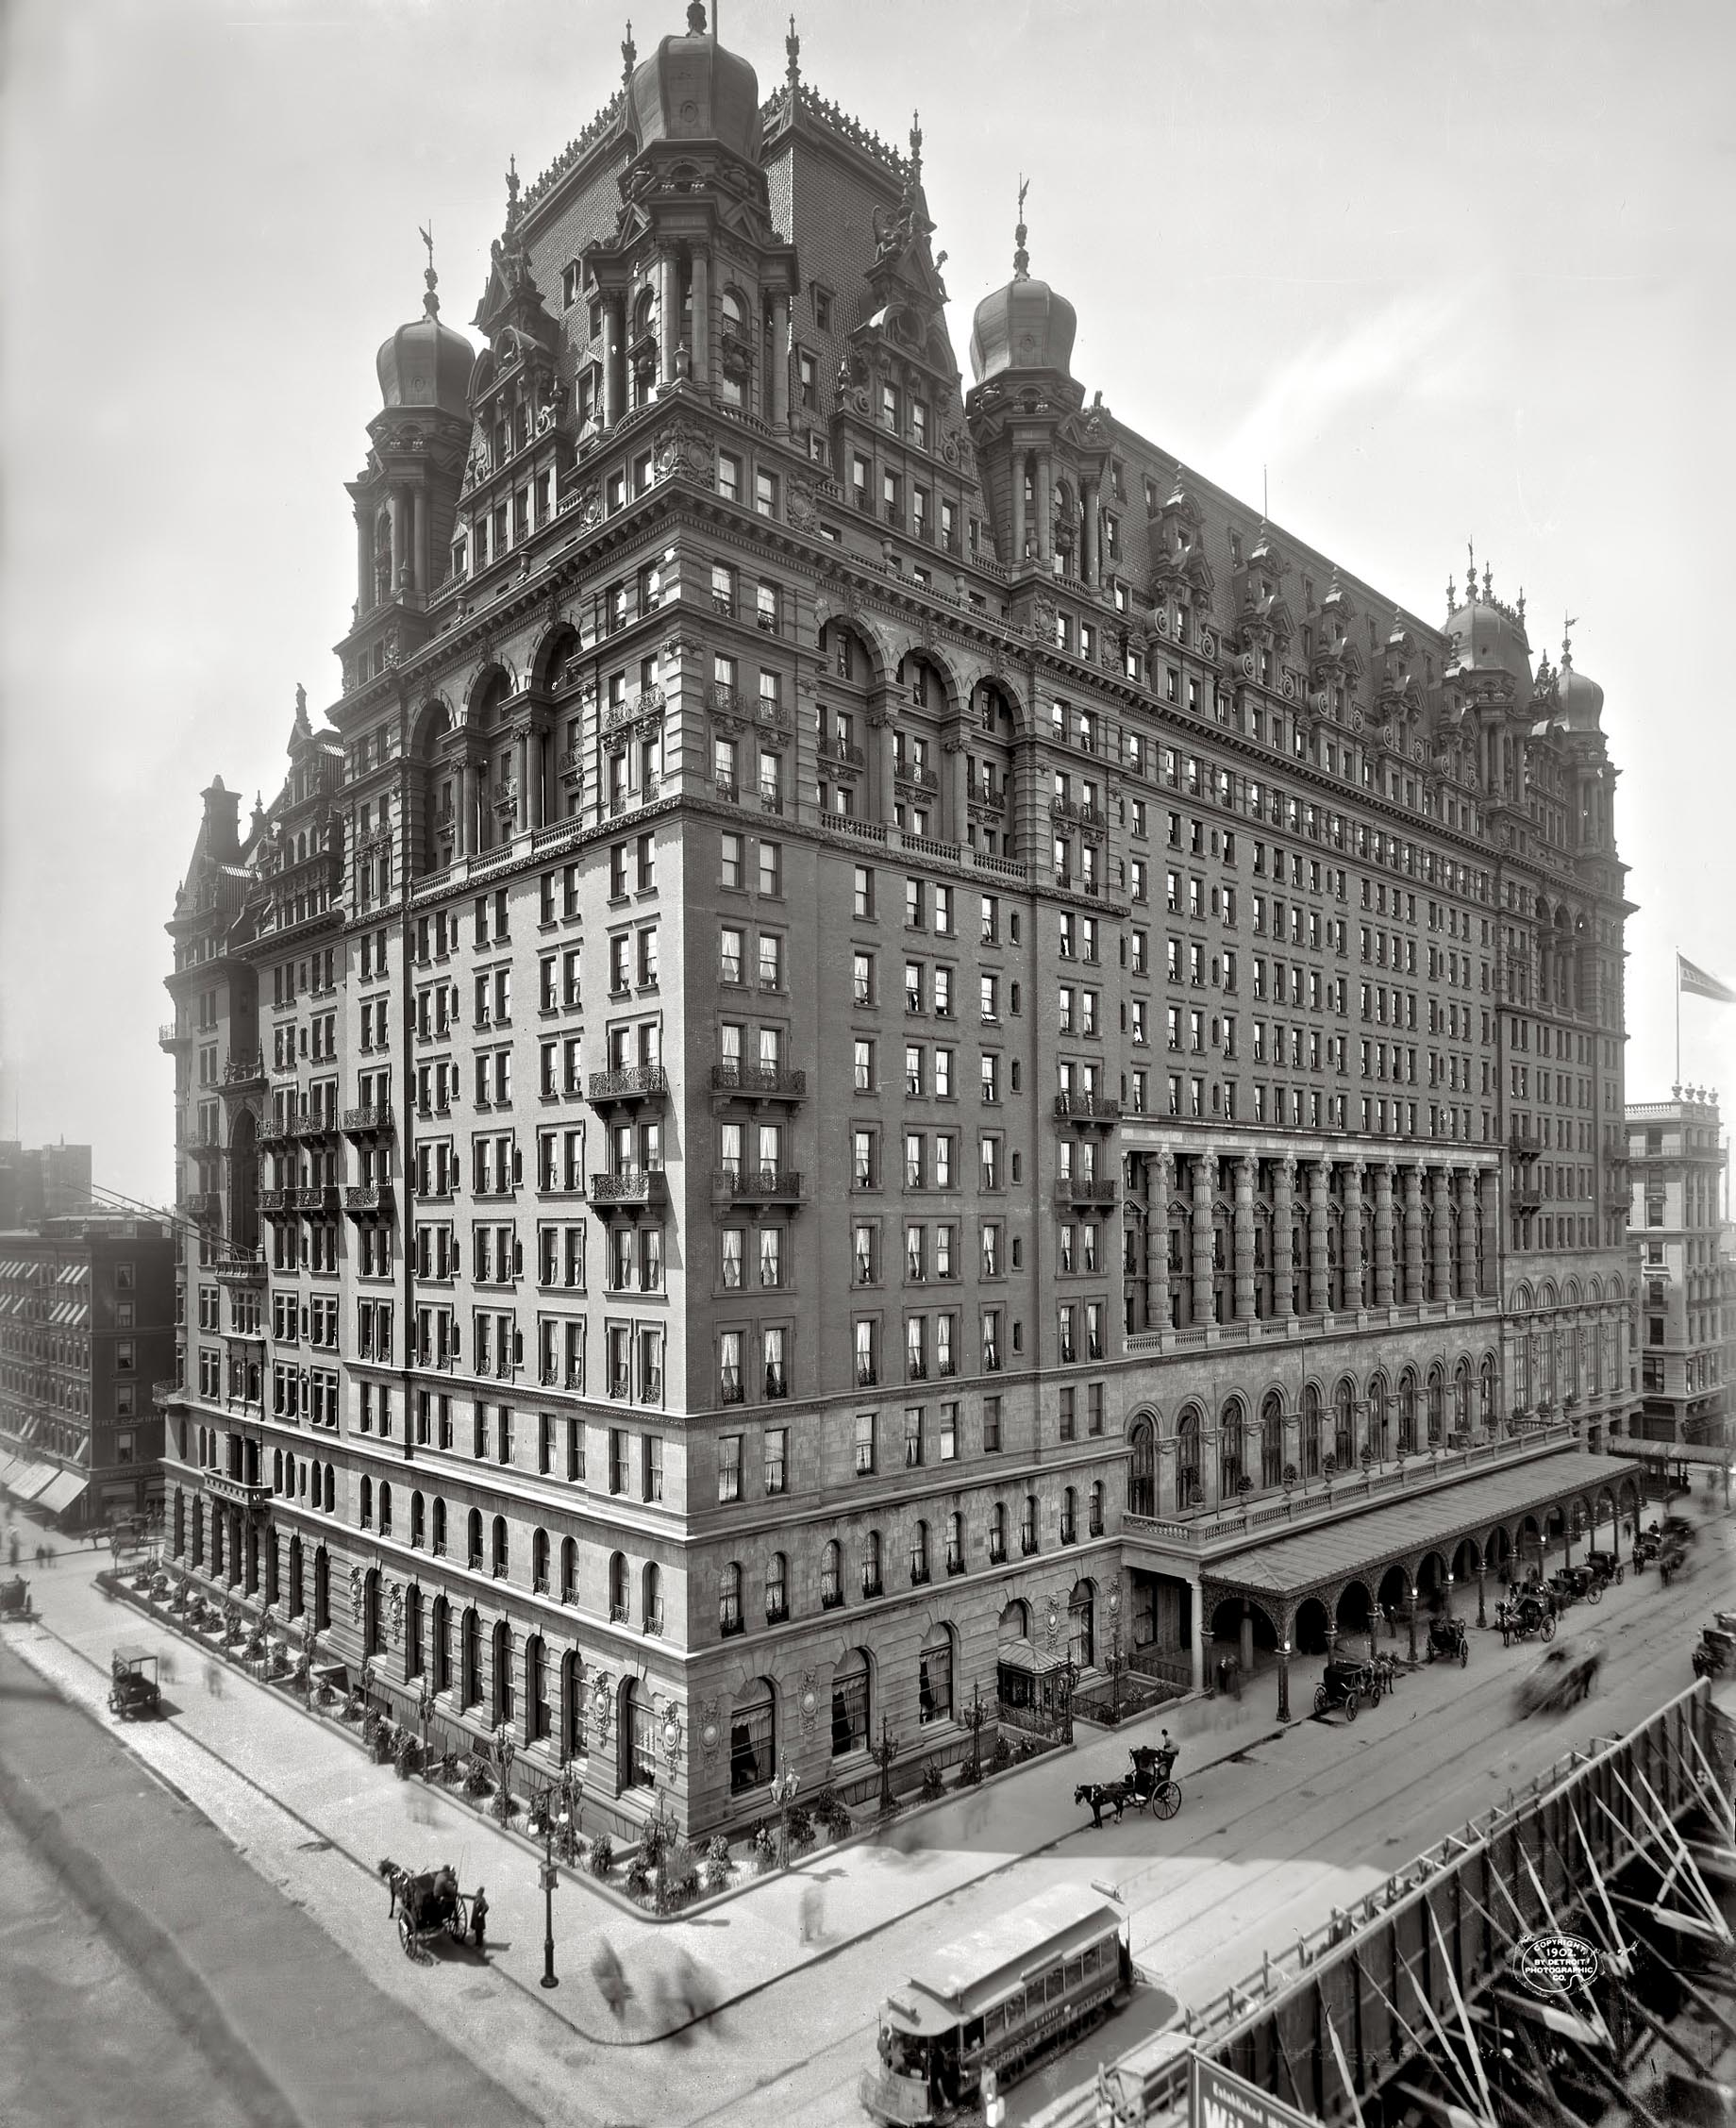 Waldorf Astoria New York - Original Hotel 34th Street and Fifth Avenue View 1902